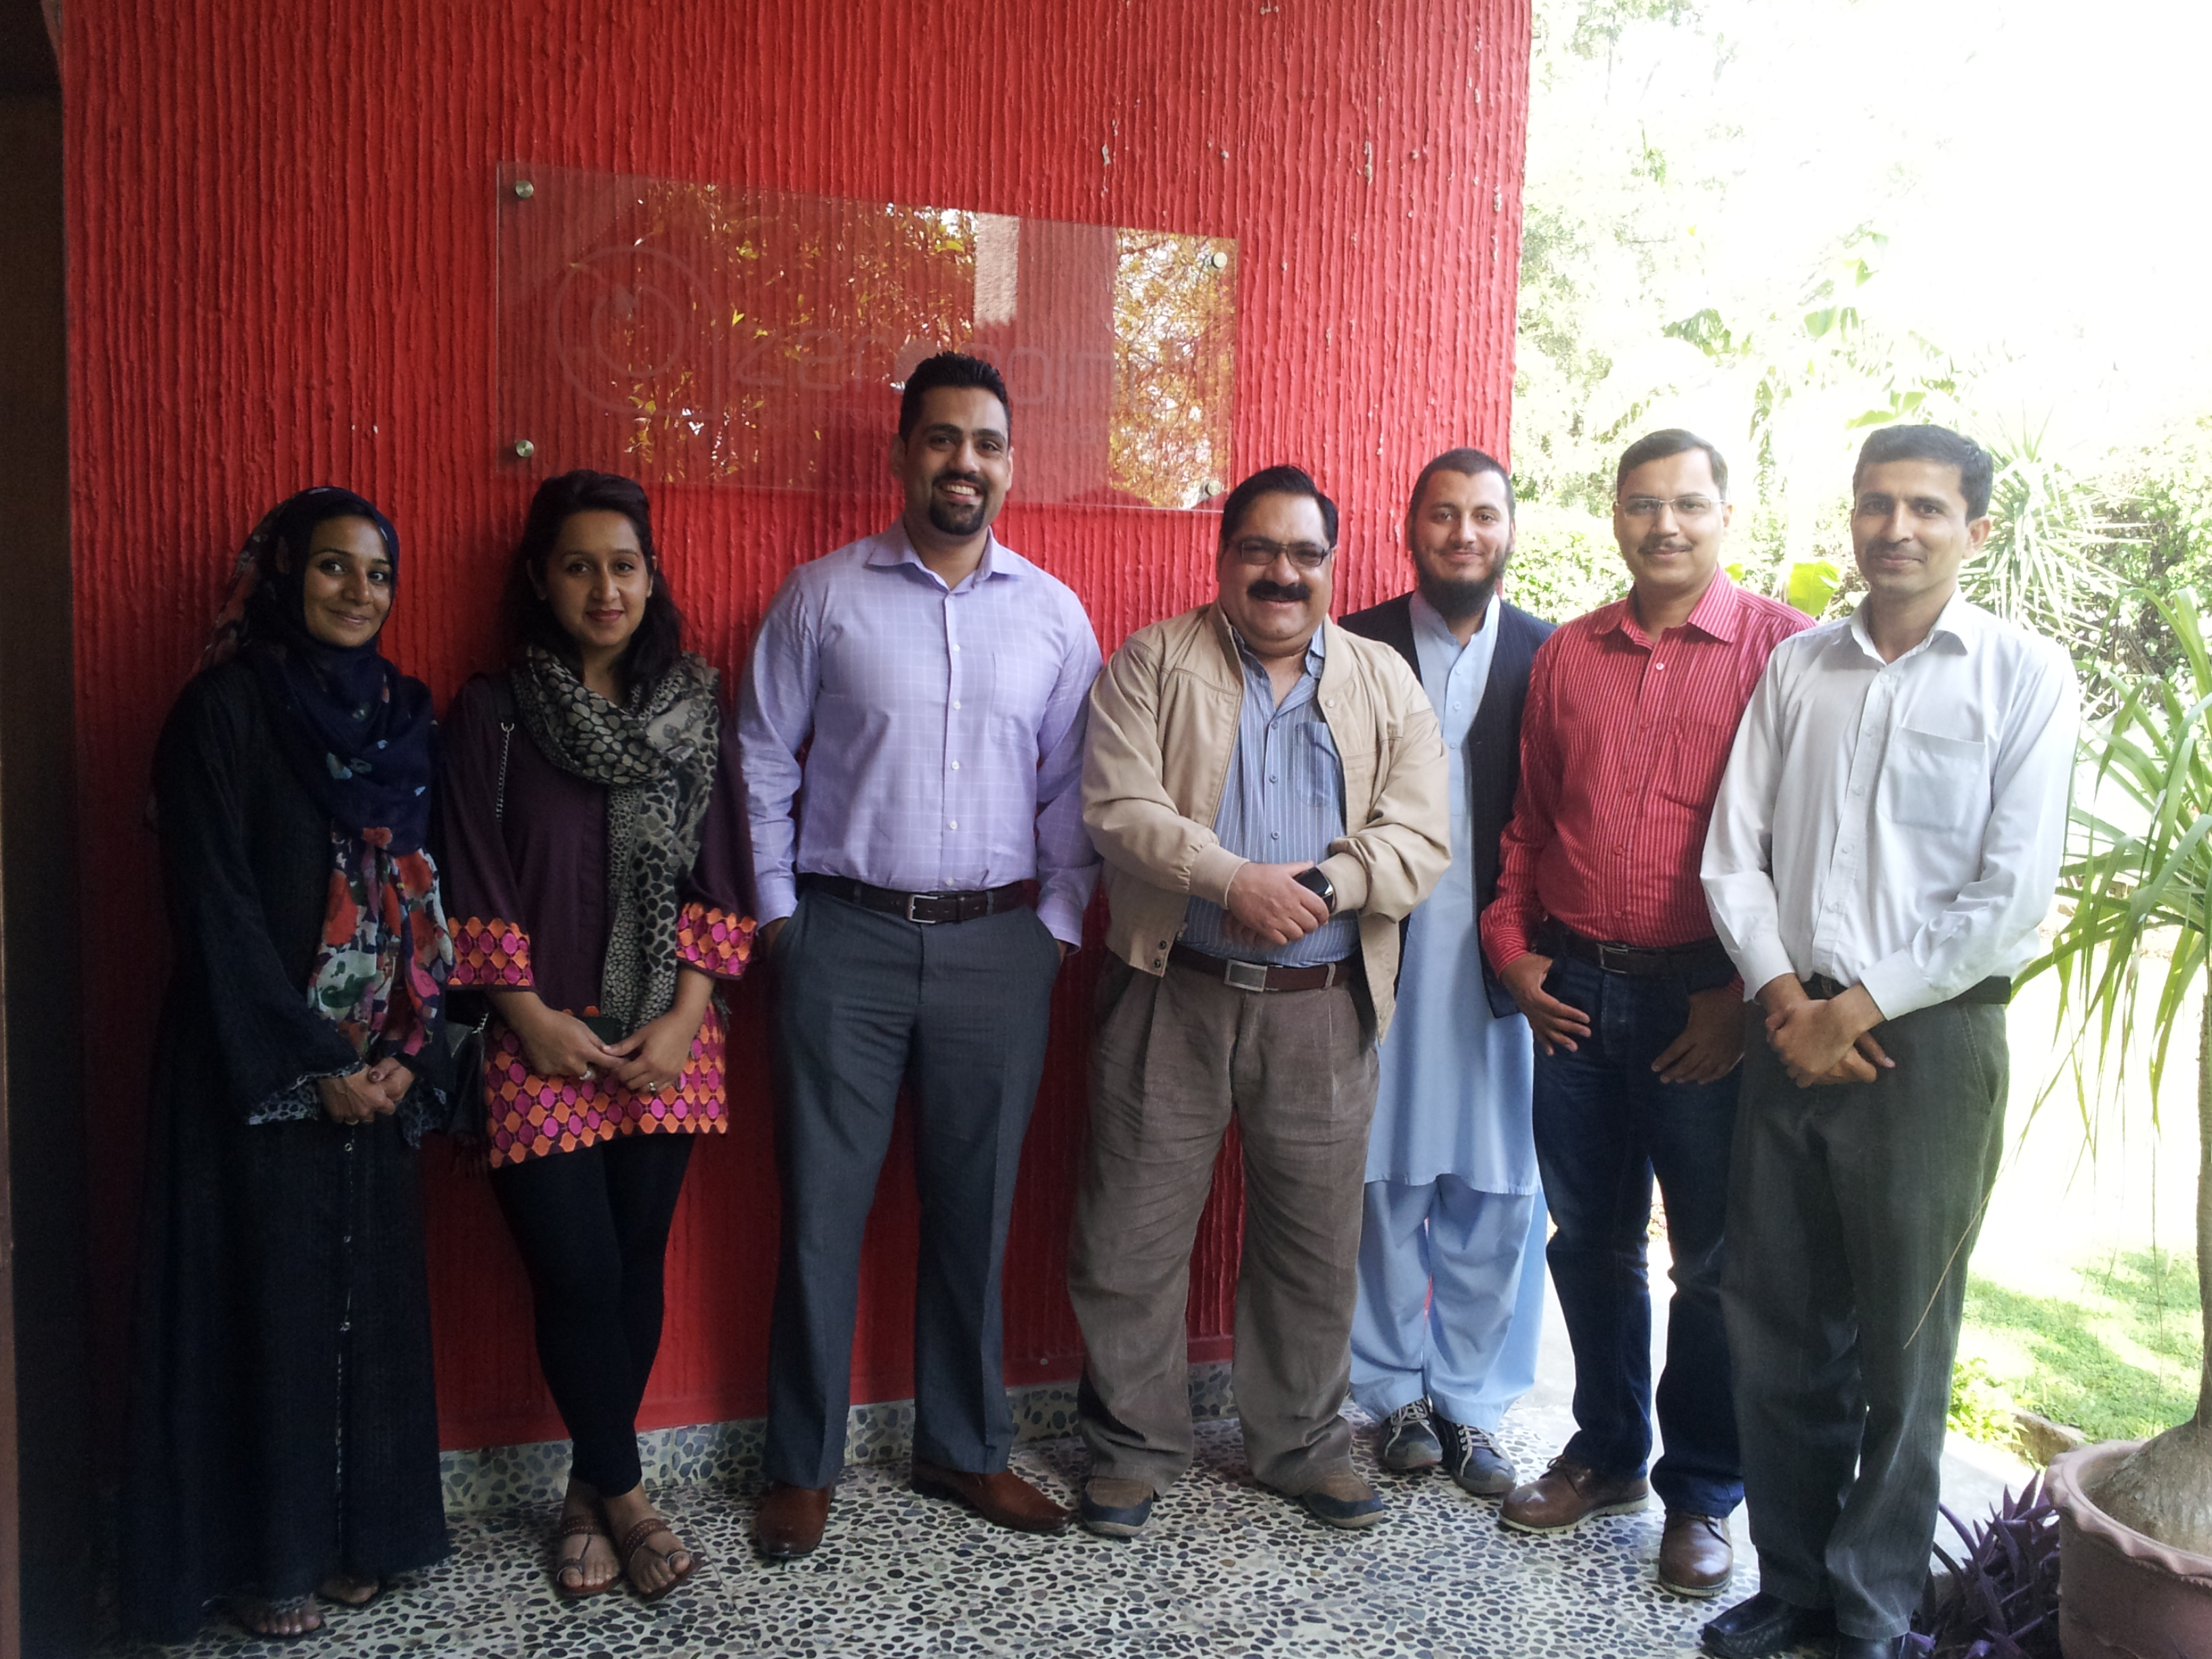 ISB:2015-04-04:Core Committee Meeting with Suhail Iqbal and Bilal Iqbal